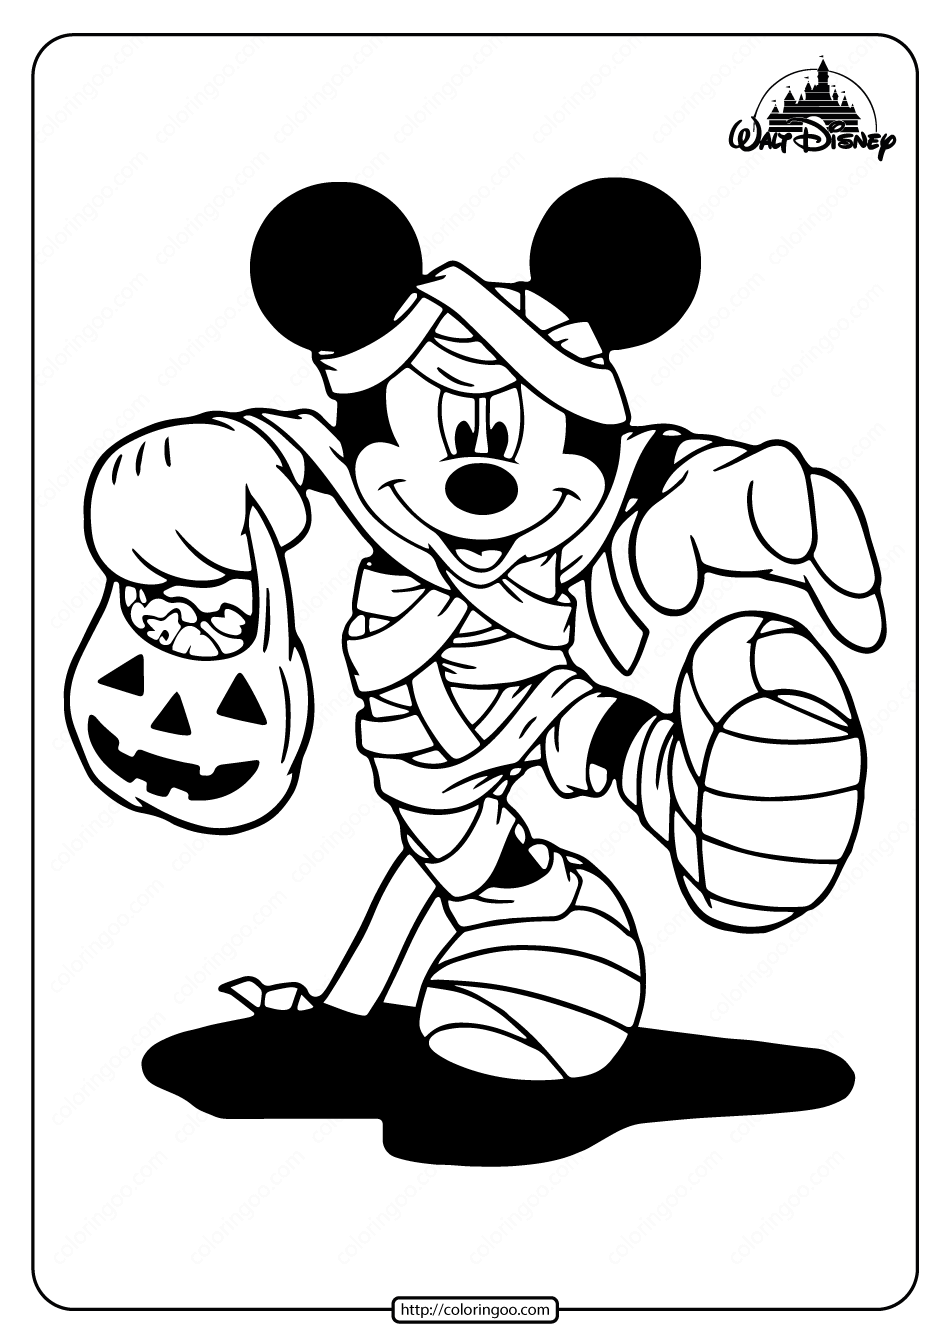 Mummy Mickey Mouse Coloring Pages Mickey Mouse Coloring Pages Mickey Coloring Pages Coloring Pages